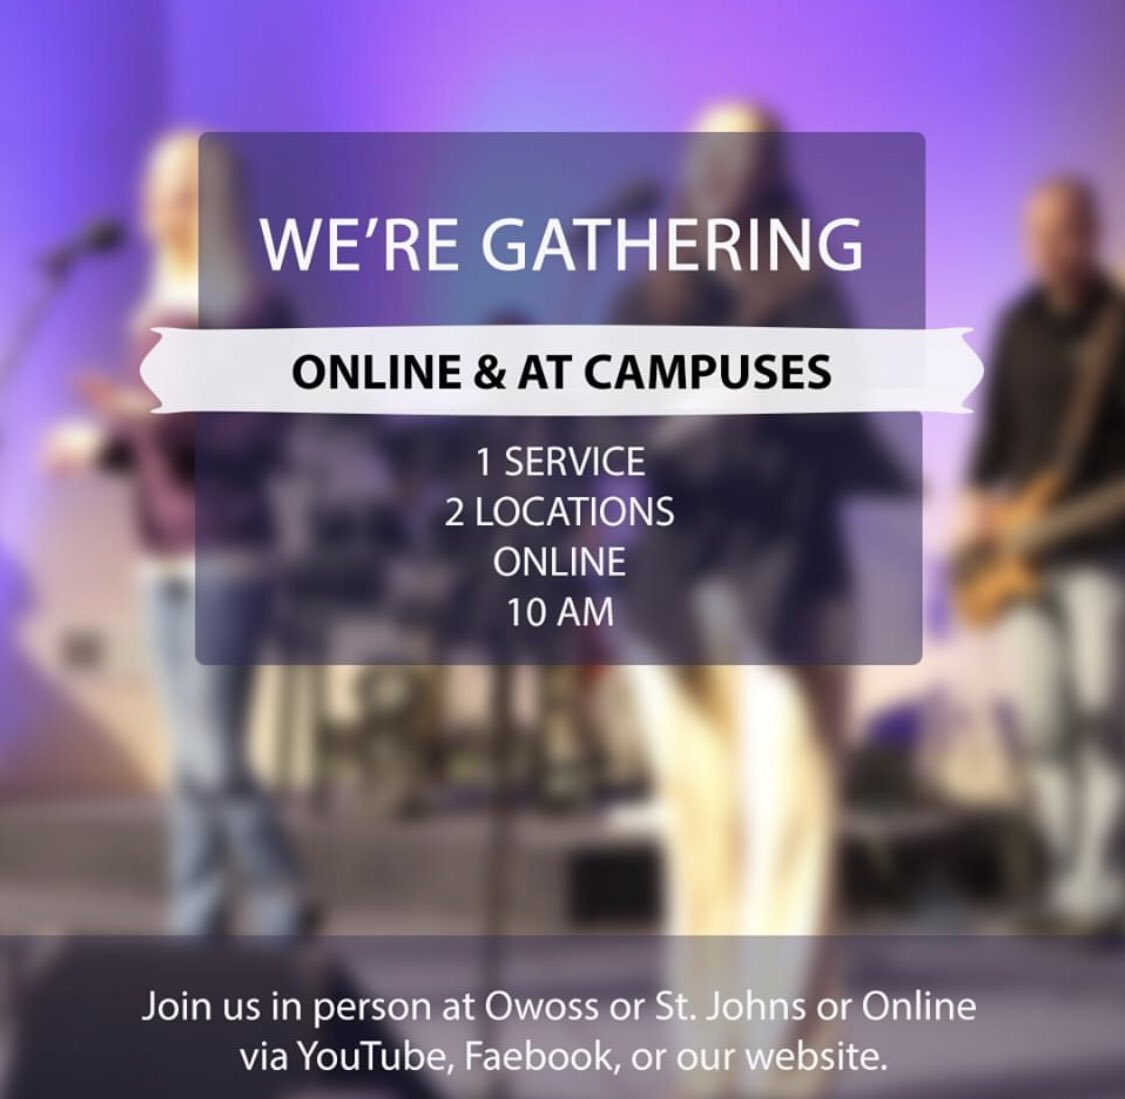 Hope to see you in-person or online this weekend. #worshipwithus #worshipanywhere https://t.co/AvjnWxPYk6